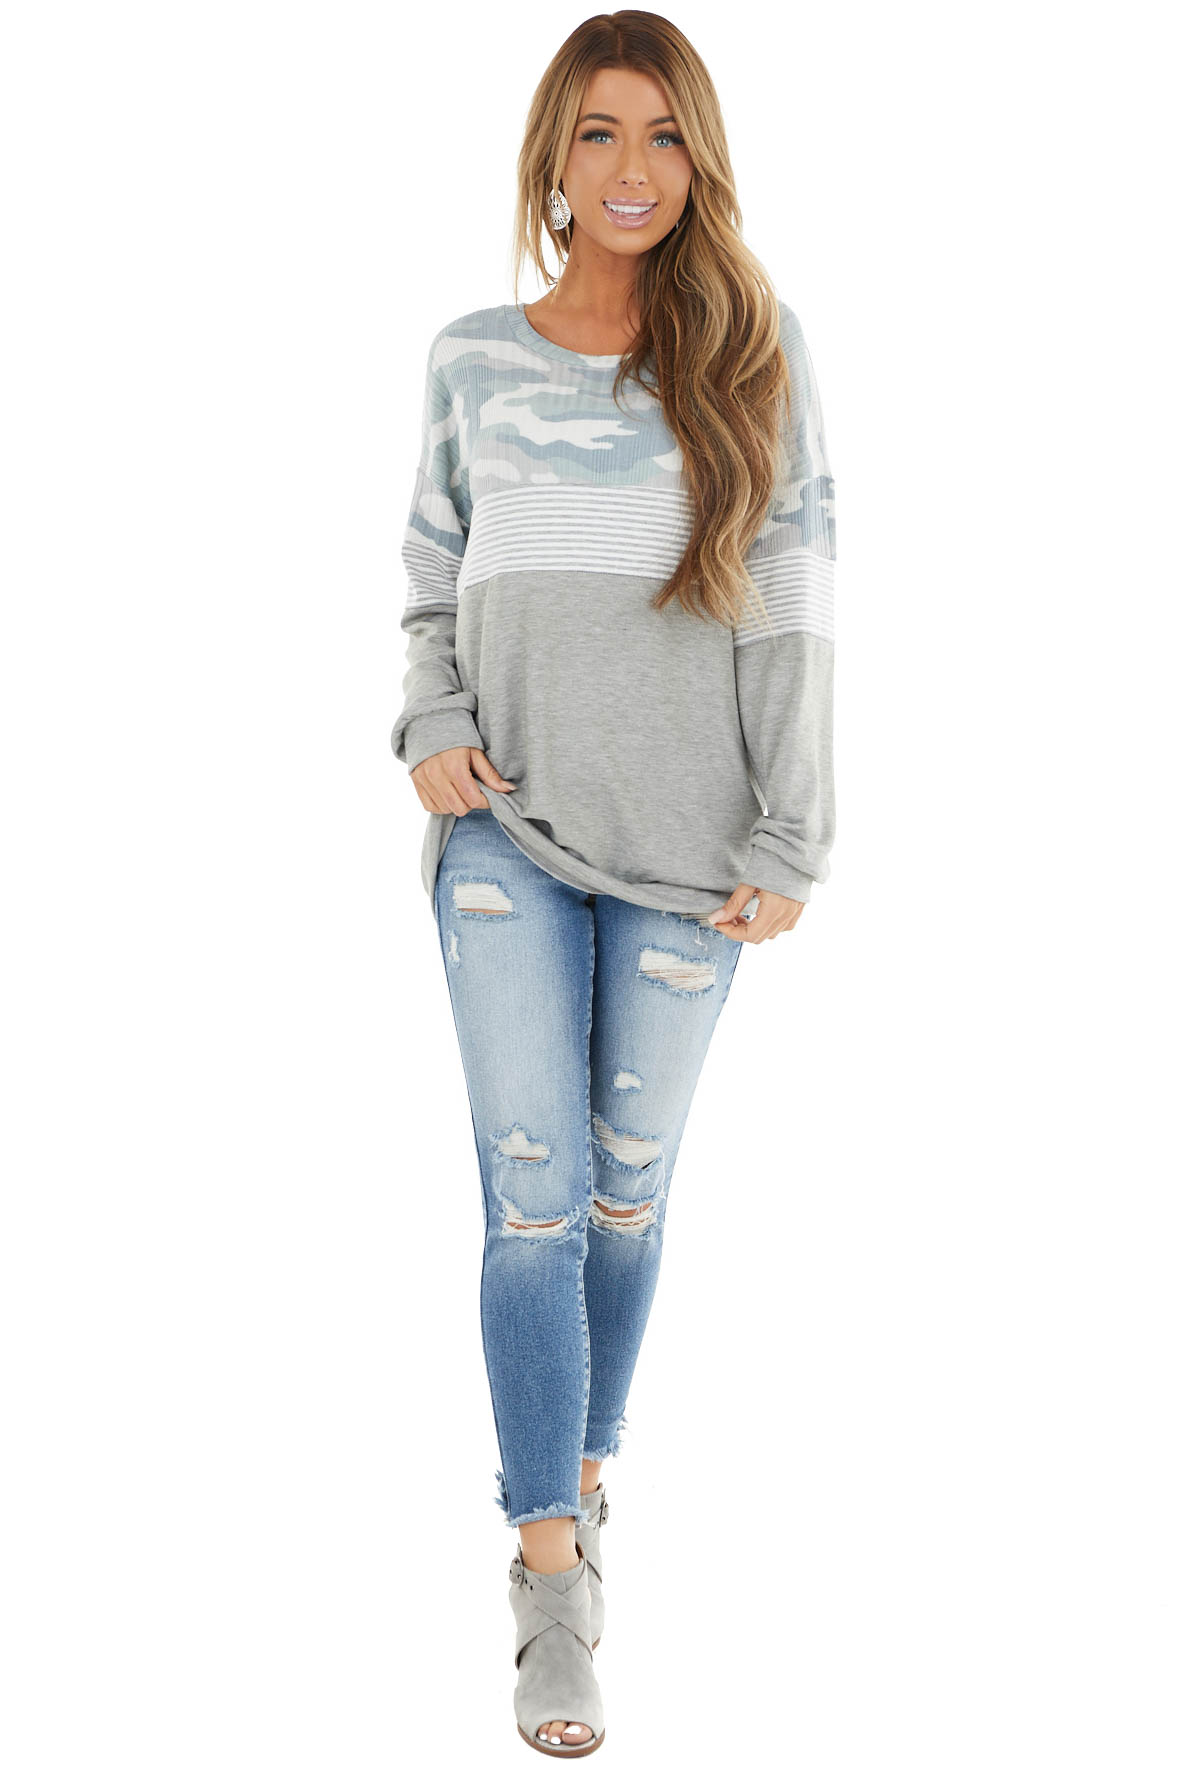 Heather Grey Multiprint Long Sleeve Knit Top with Wide Neck